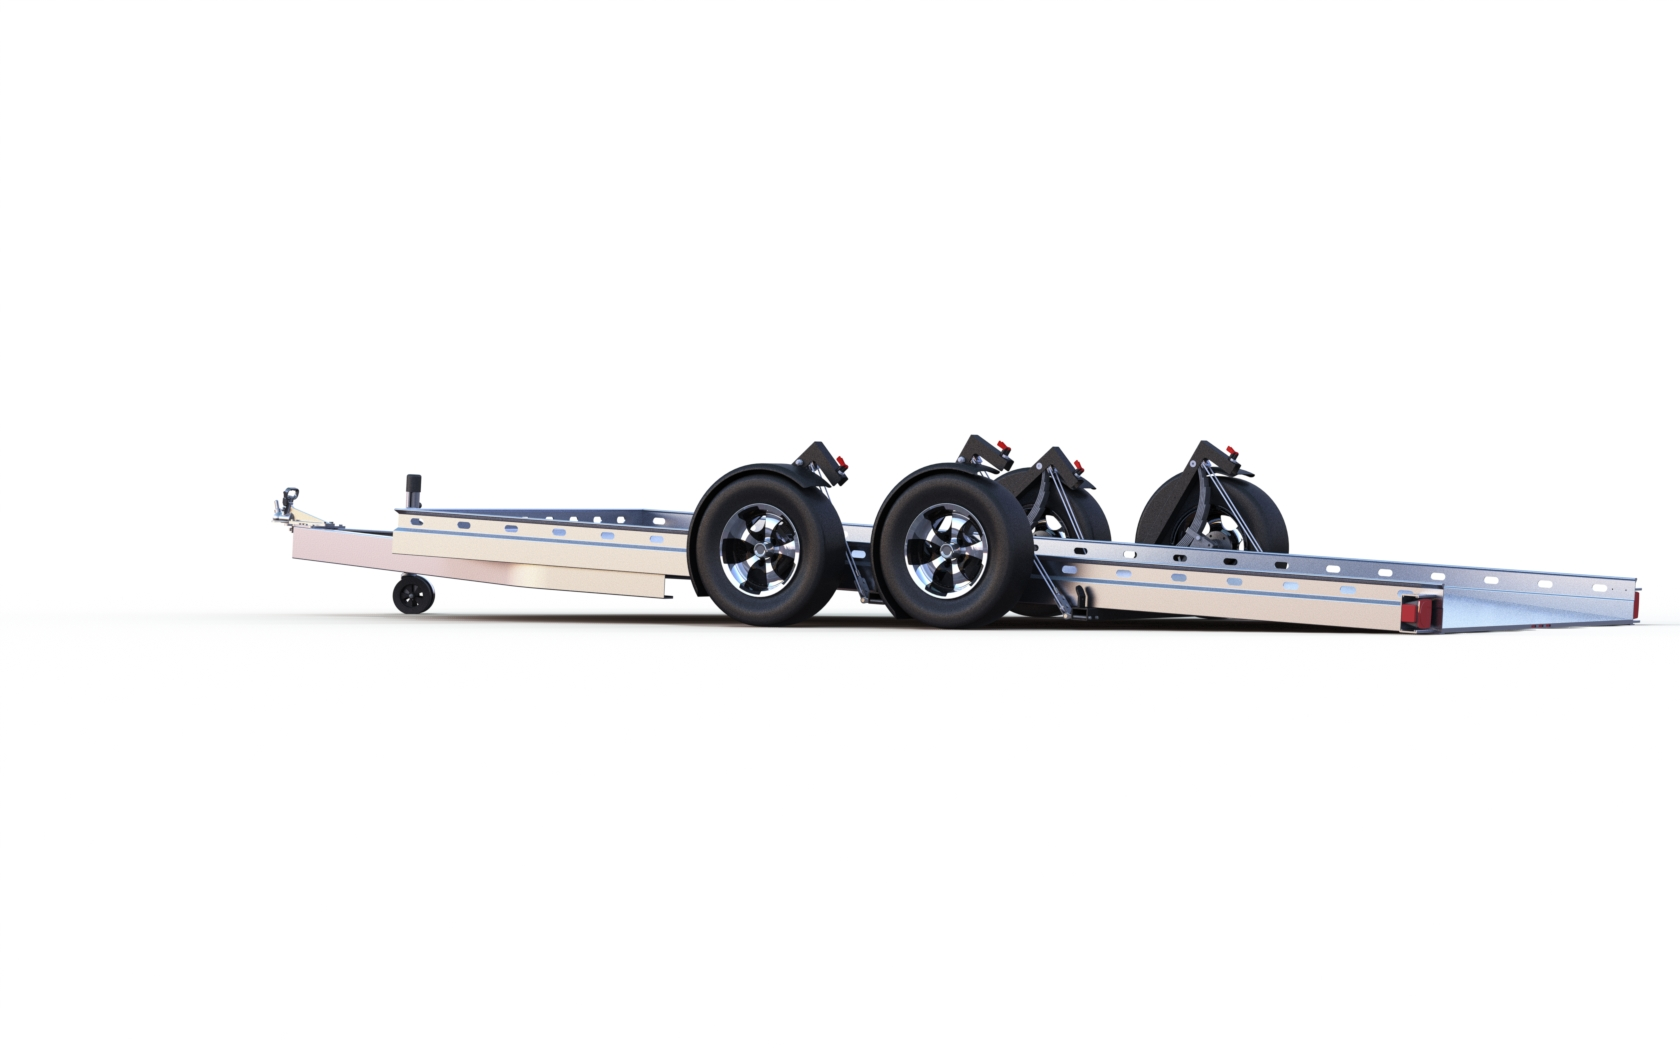 Side view of Futura trailer with double axel lowered to ground for easy roll on/off for vehicles.